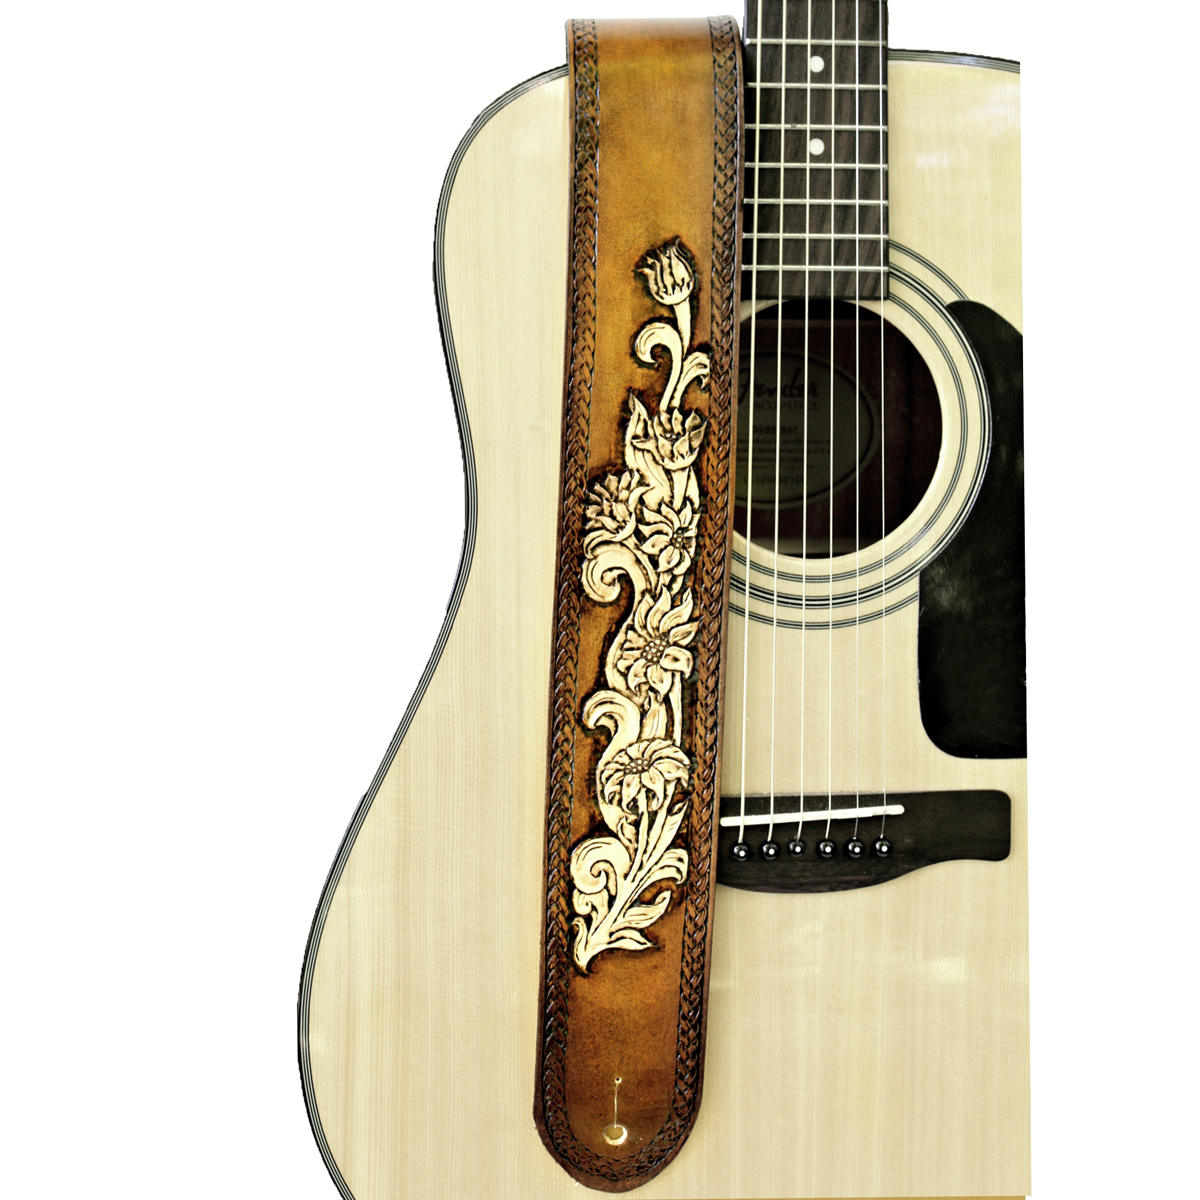 wildflower-leather-guitar-strap-the-leather-smithy_1WEB